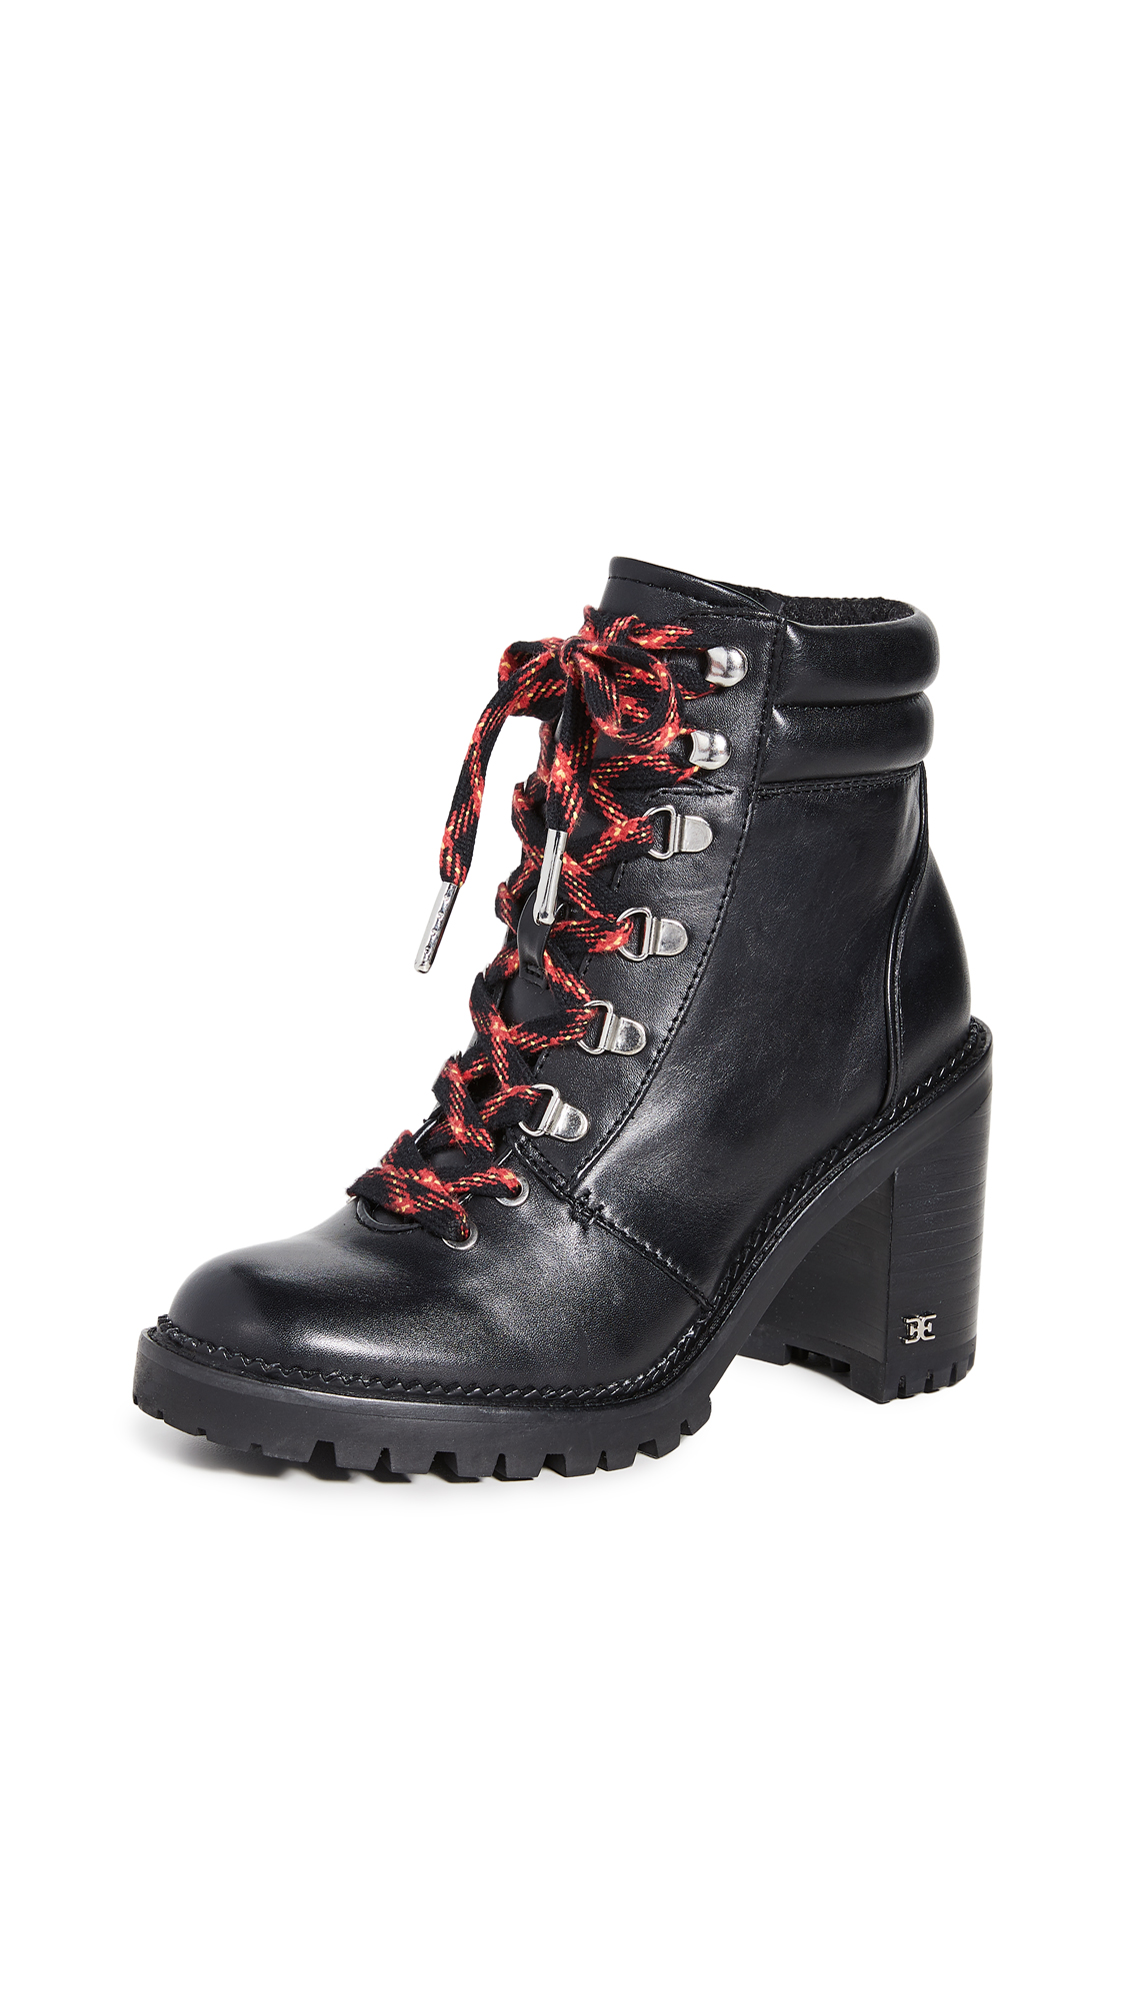 Sam Edelman Sade Boots - 60% Off Sale